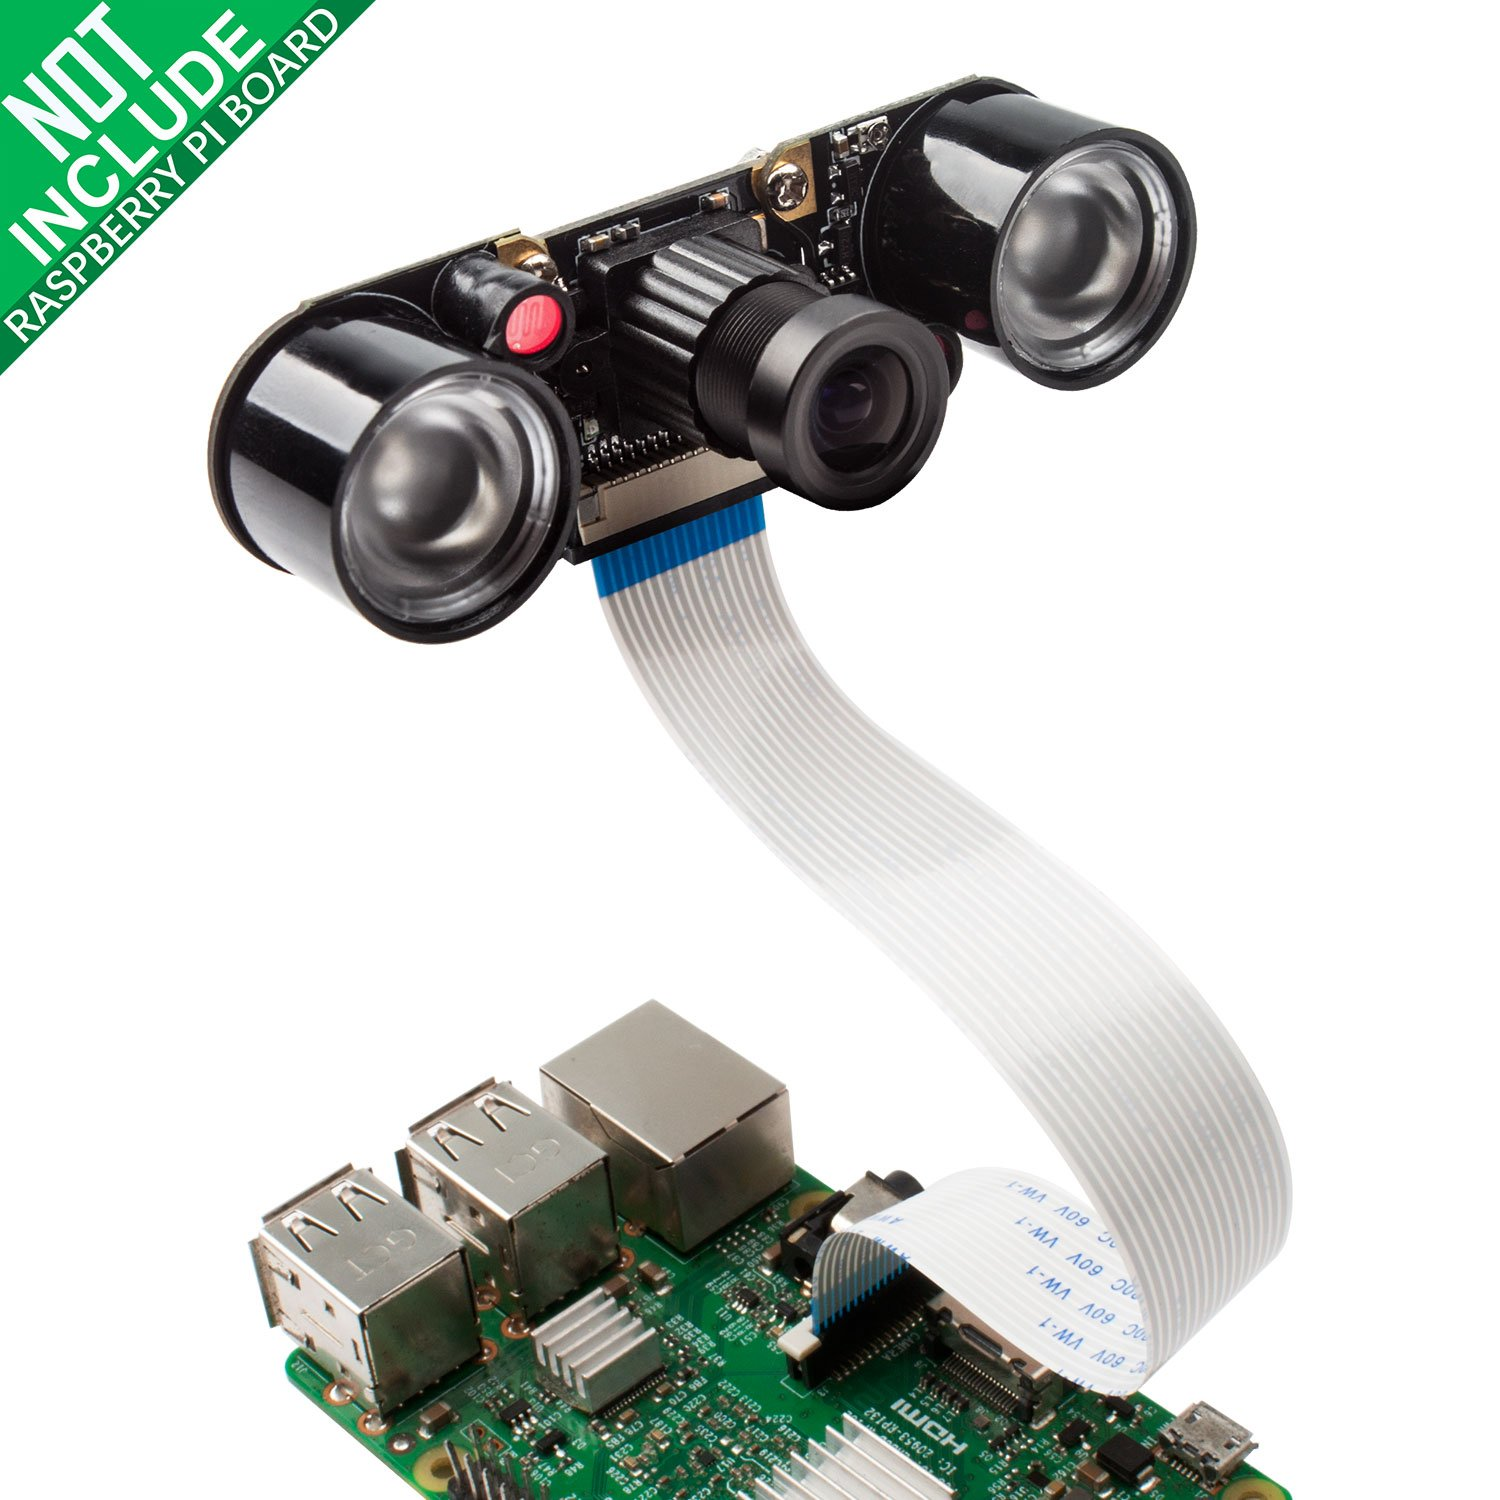 Camera Module for Raspberry Pi 3 with 5MP 1080p OV5647 Video Webcam Supports Night Vision Compatible with Raspberry Pi 3b 2 Model B B+ by Smraza